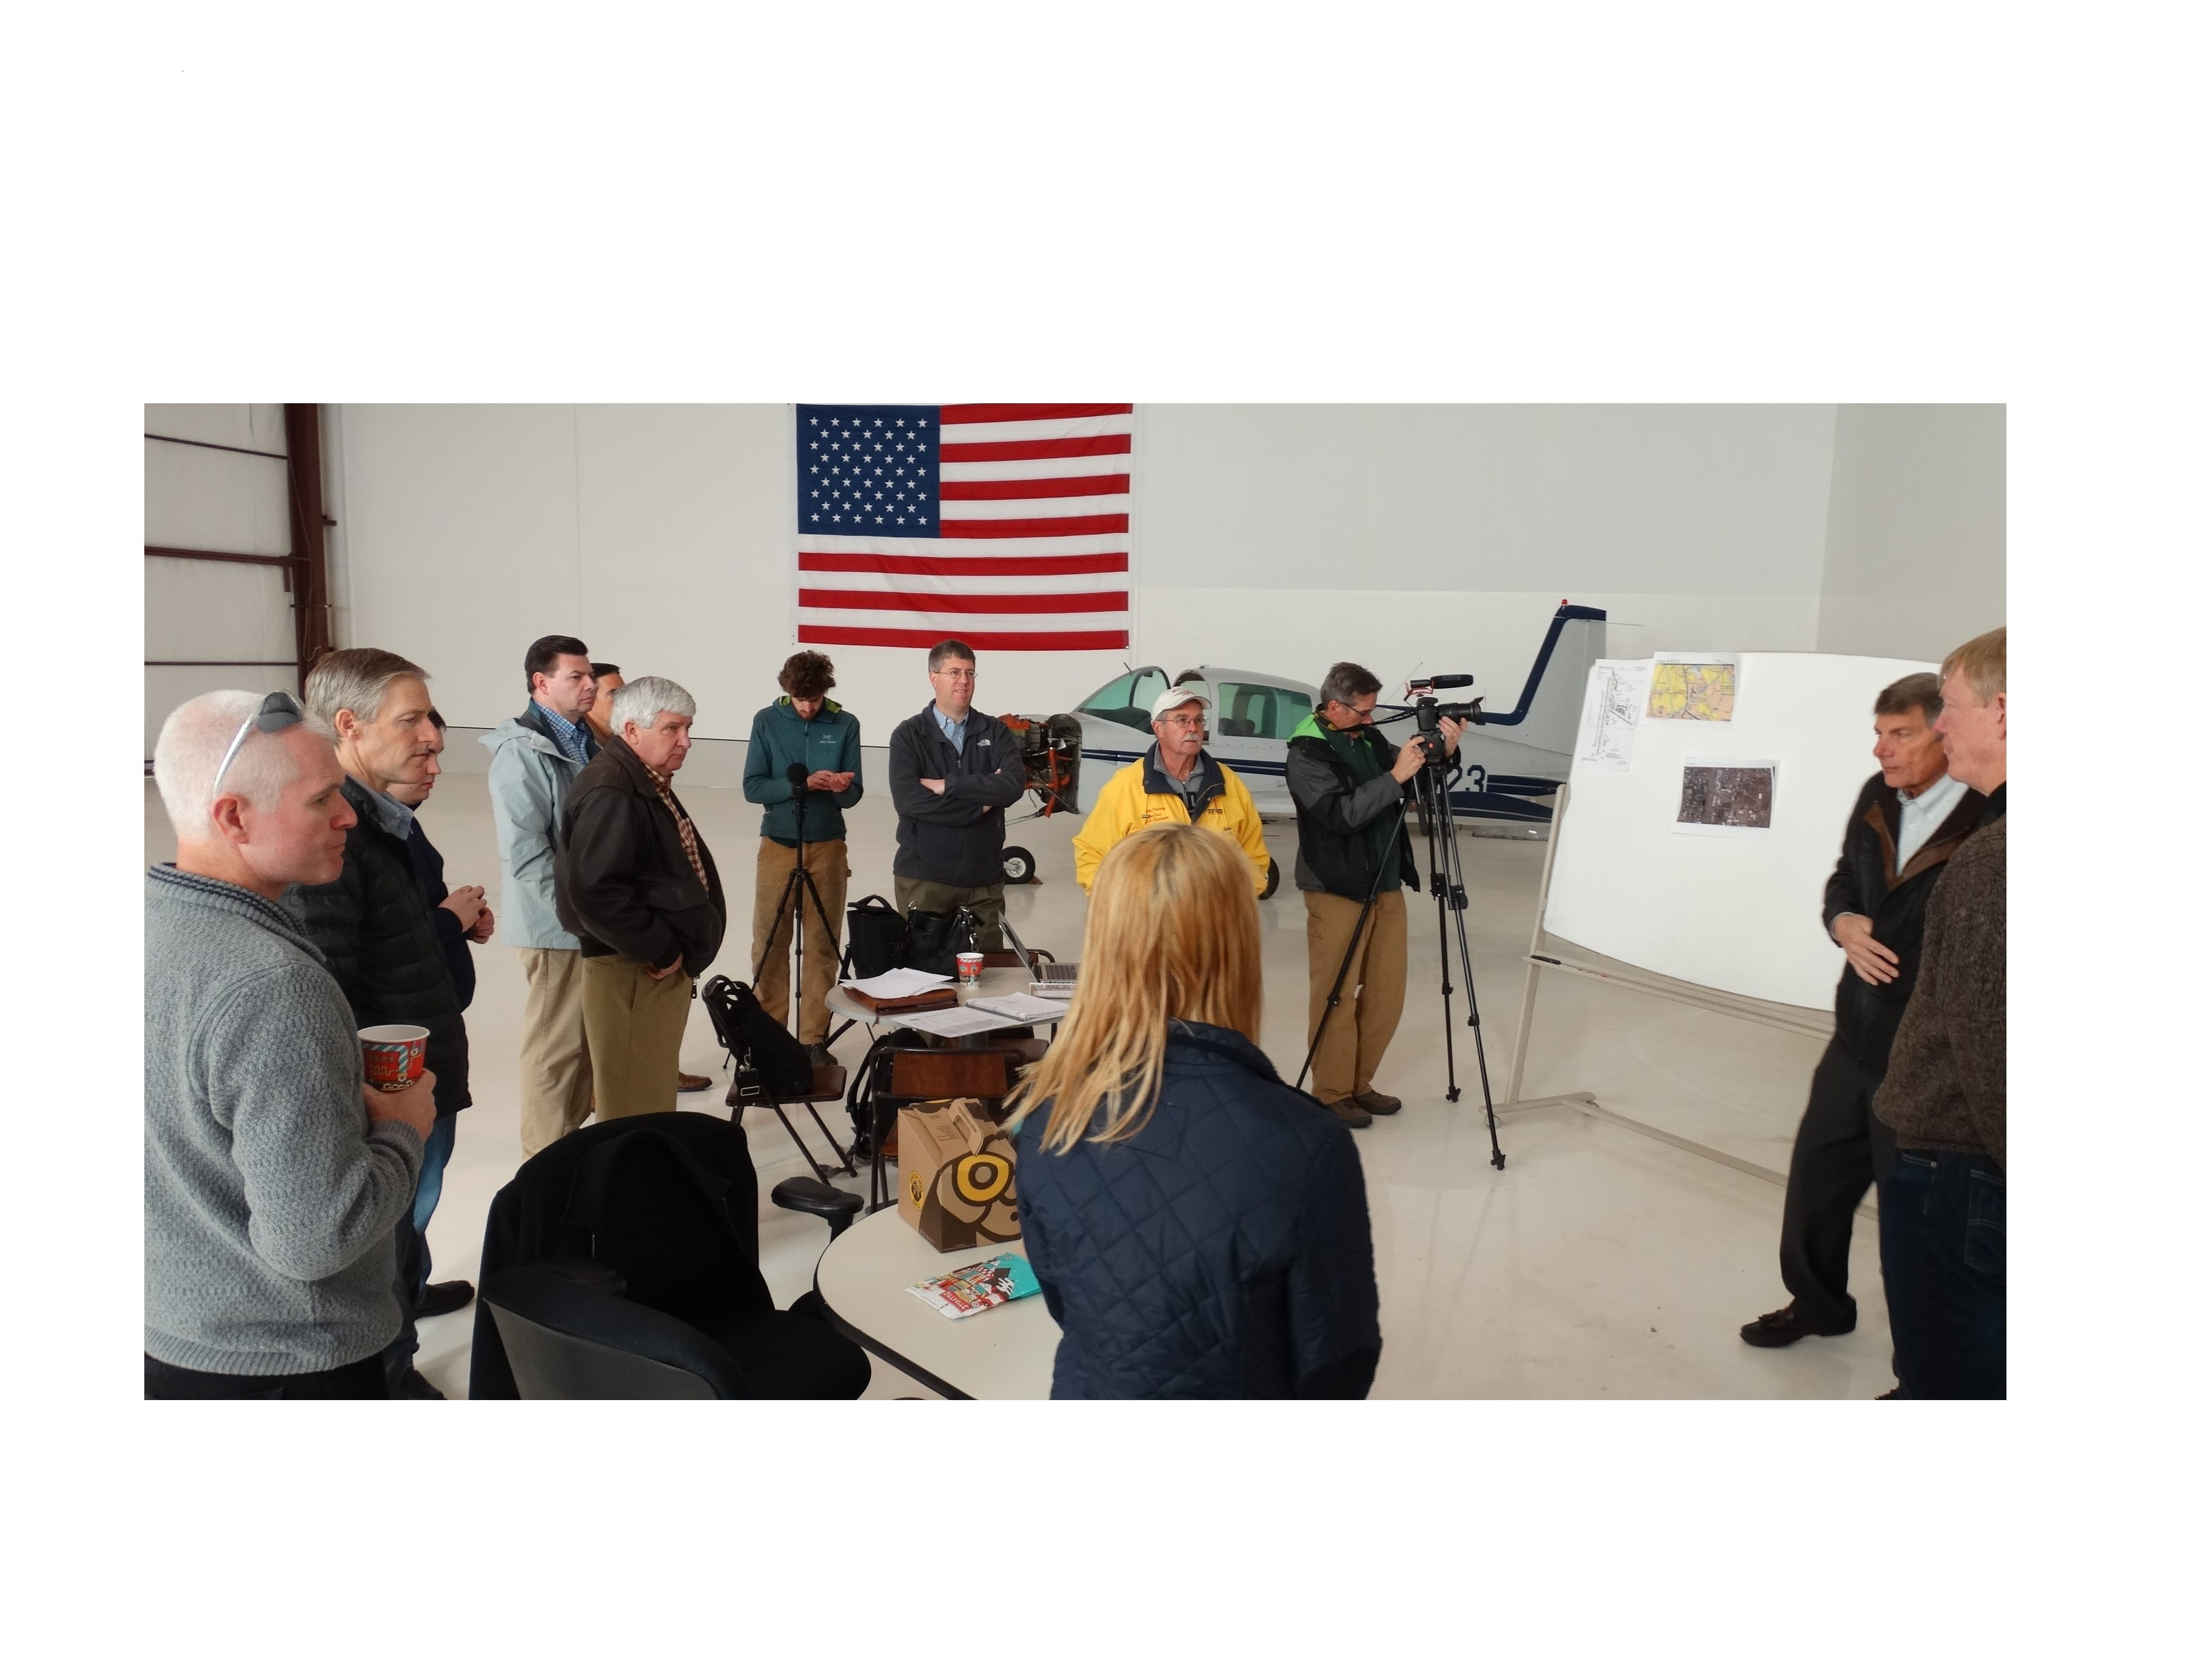 Httpsgeneralaviationnews20151210rv 6 anniversary to be charlie johnson briefingg fandeluxe Choice Image